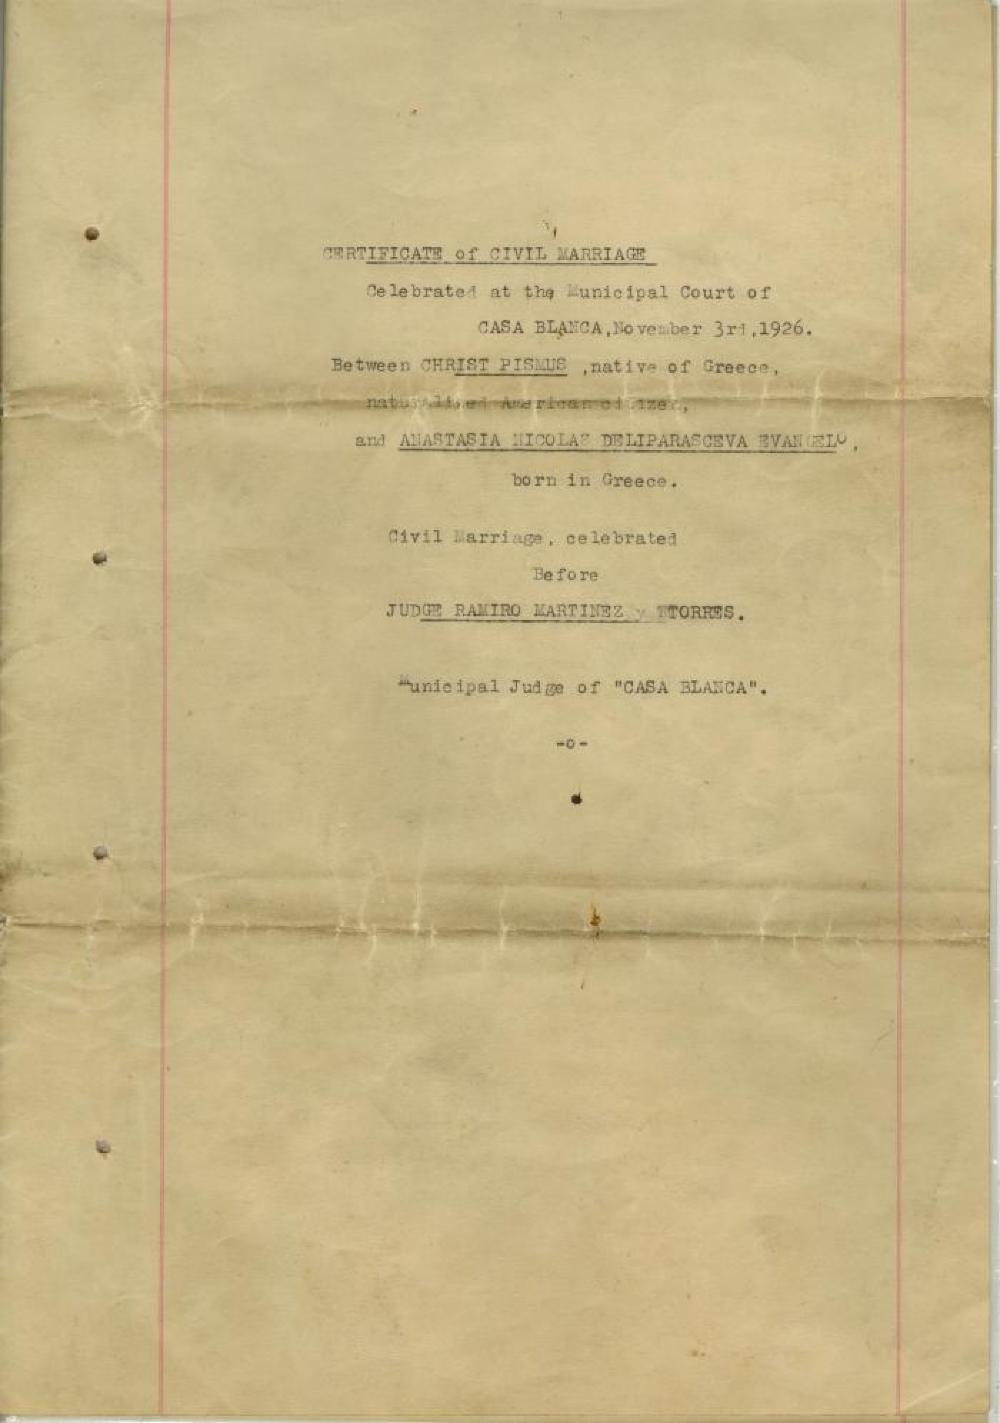 Certificate, Marriage